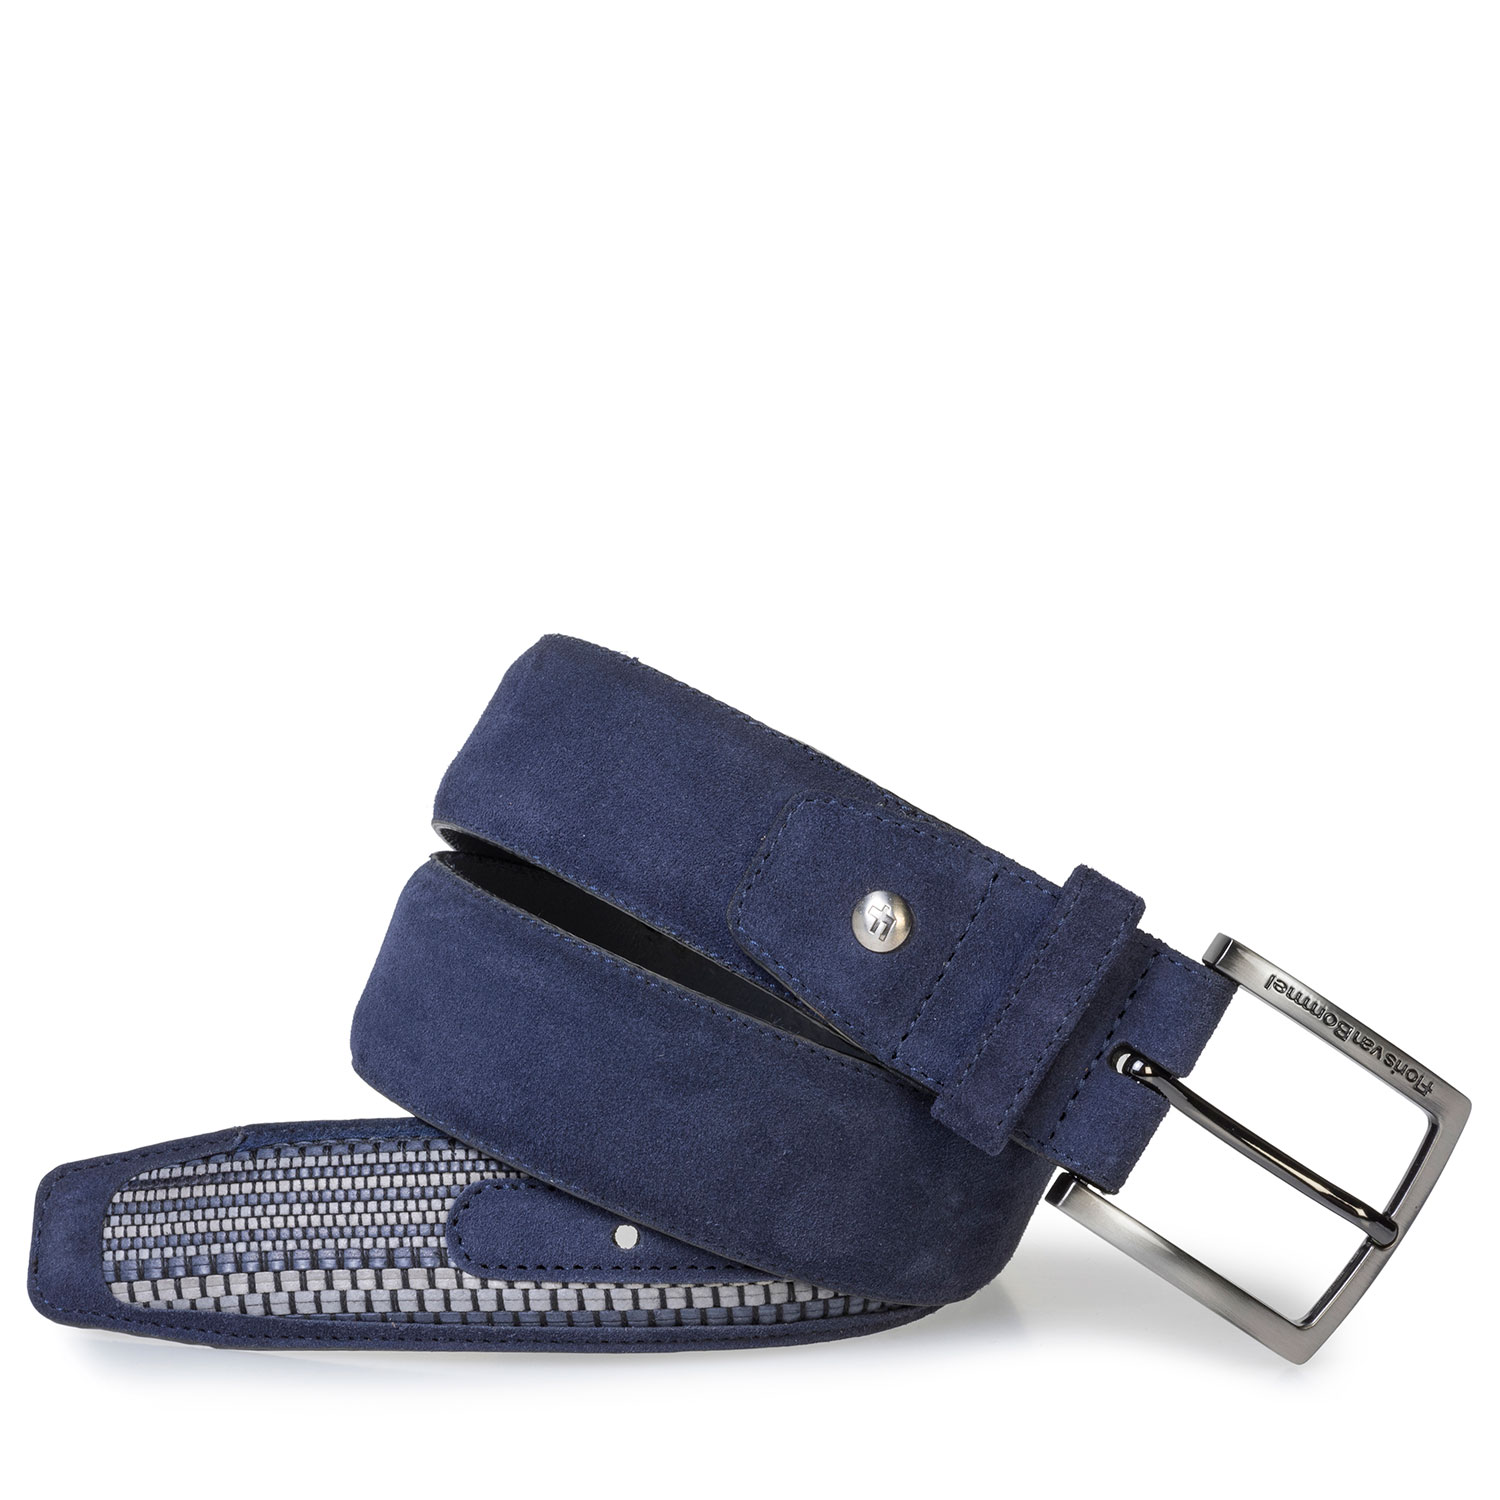 75159/33 - Dark blue belt with braided details